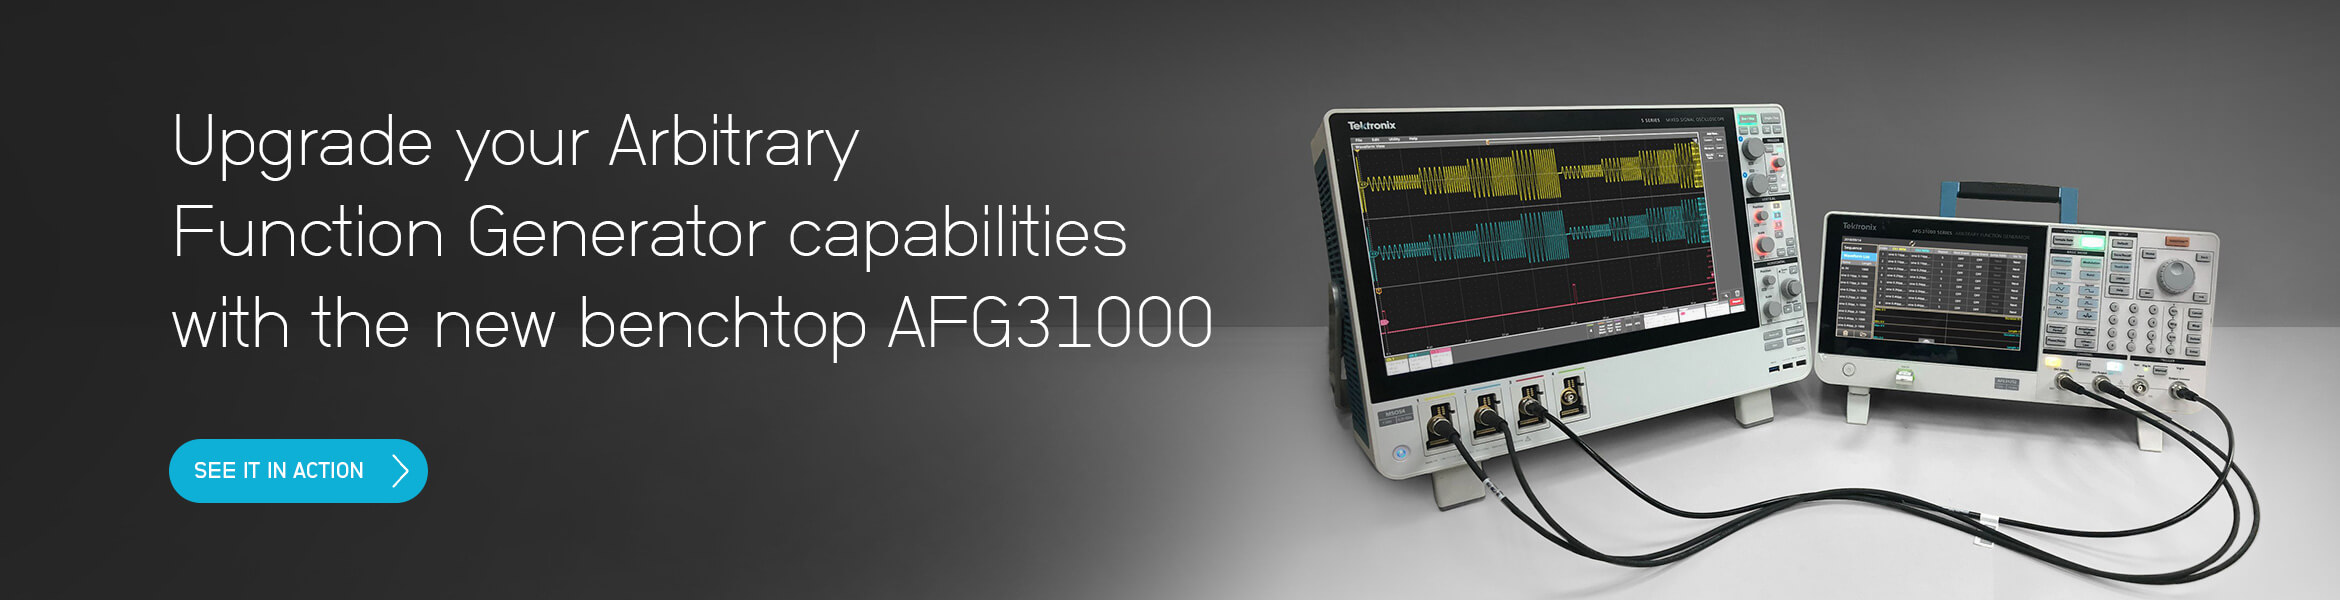 Upgrade your arbitrary function generator capabilities with the new benchtop AFG31000